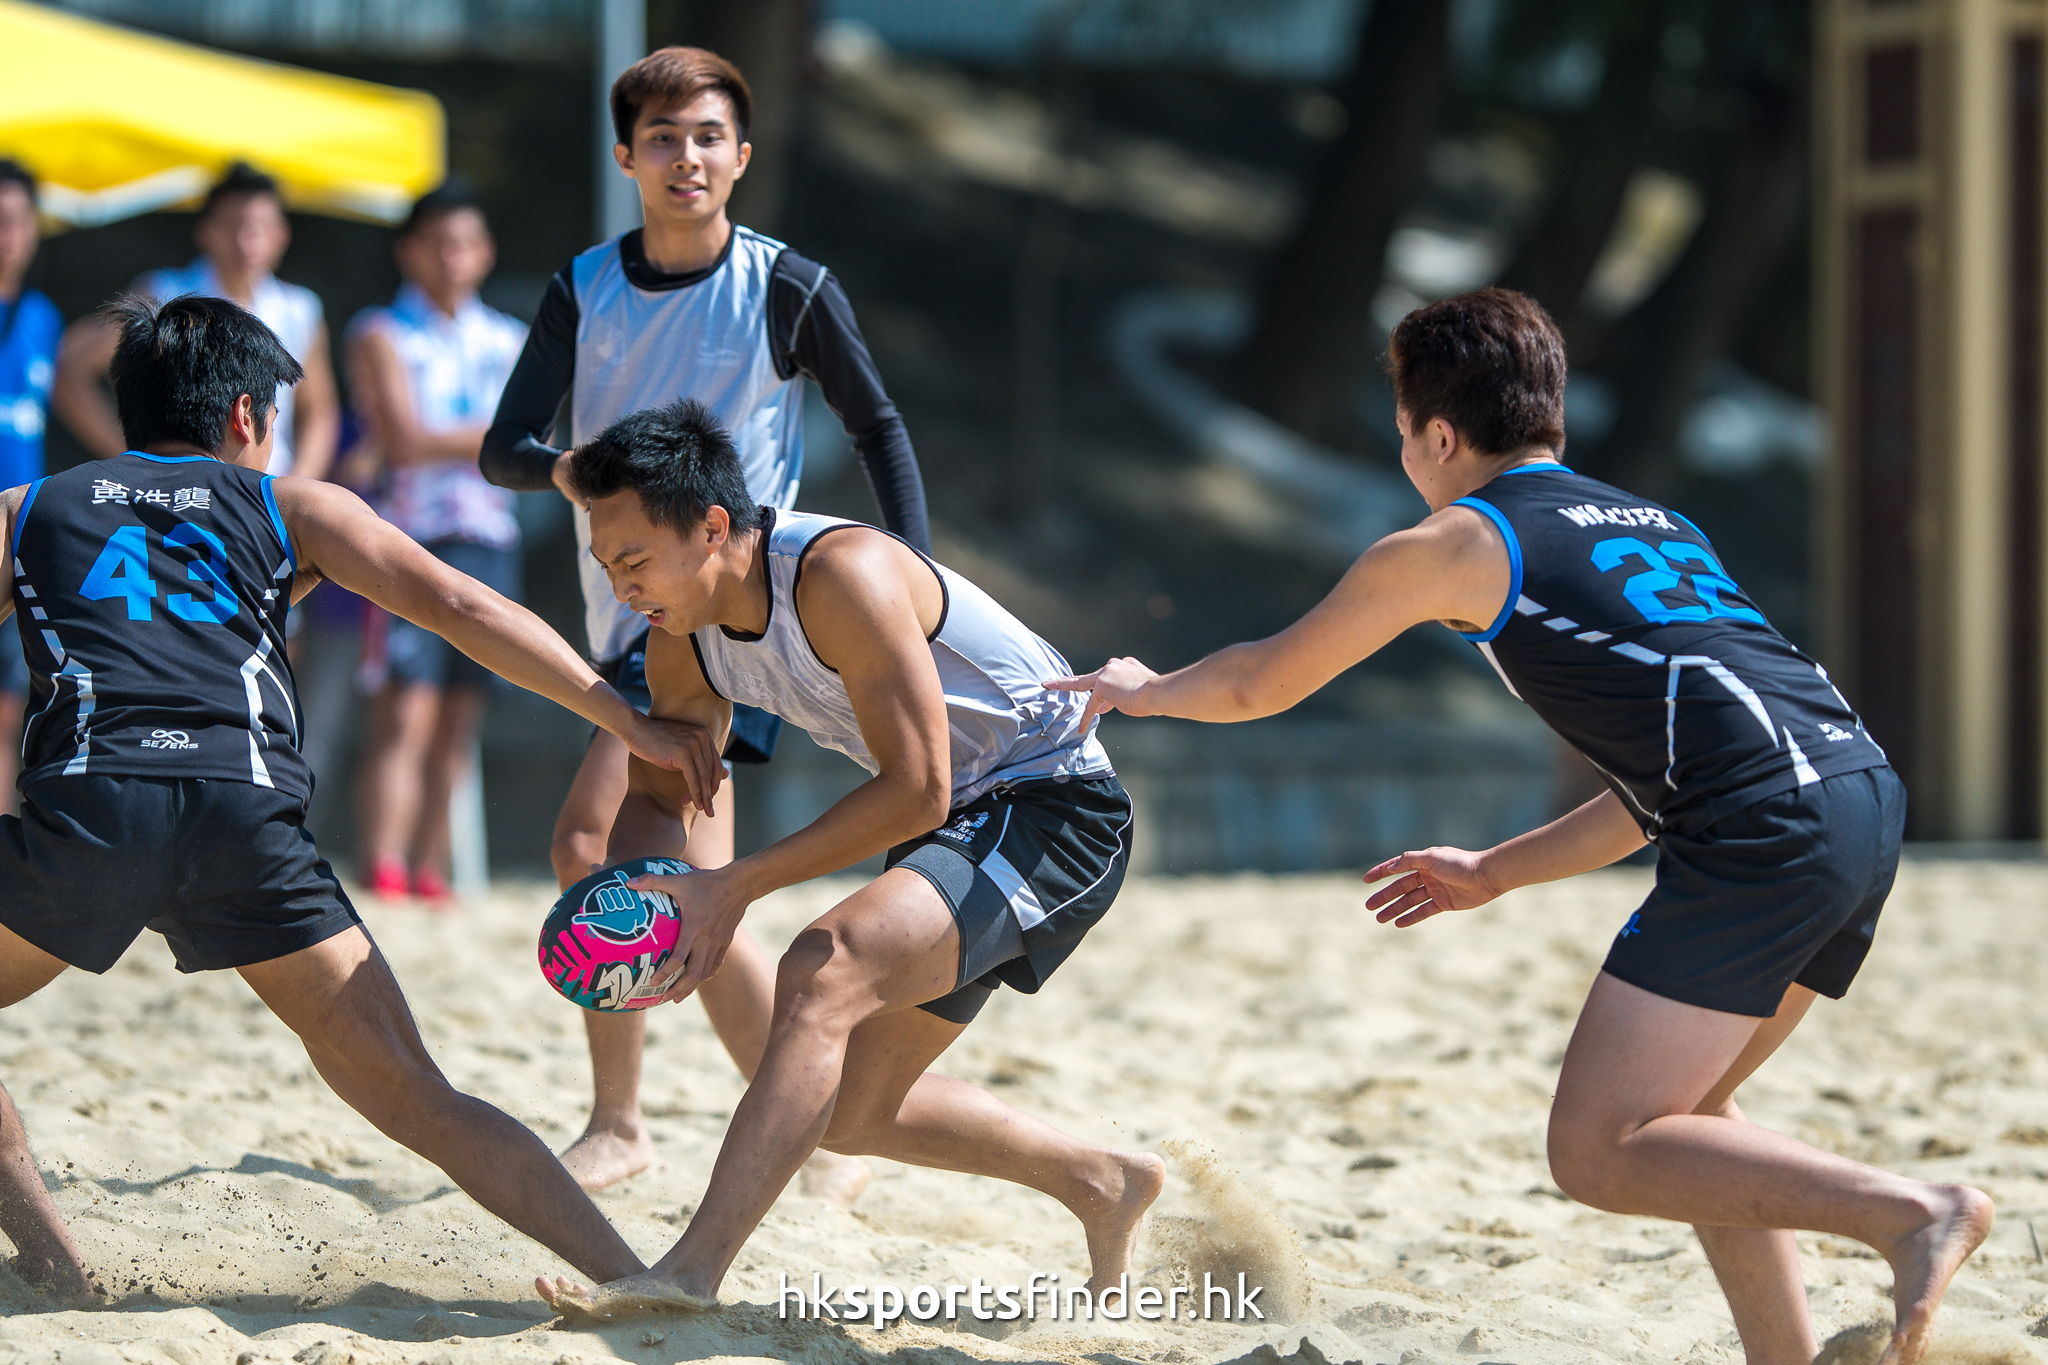 Her_GoldCoastTertiaryBeachRugby_16-11-12 12.21.50_000705.jpg